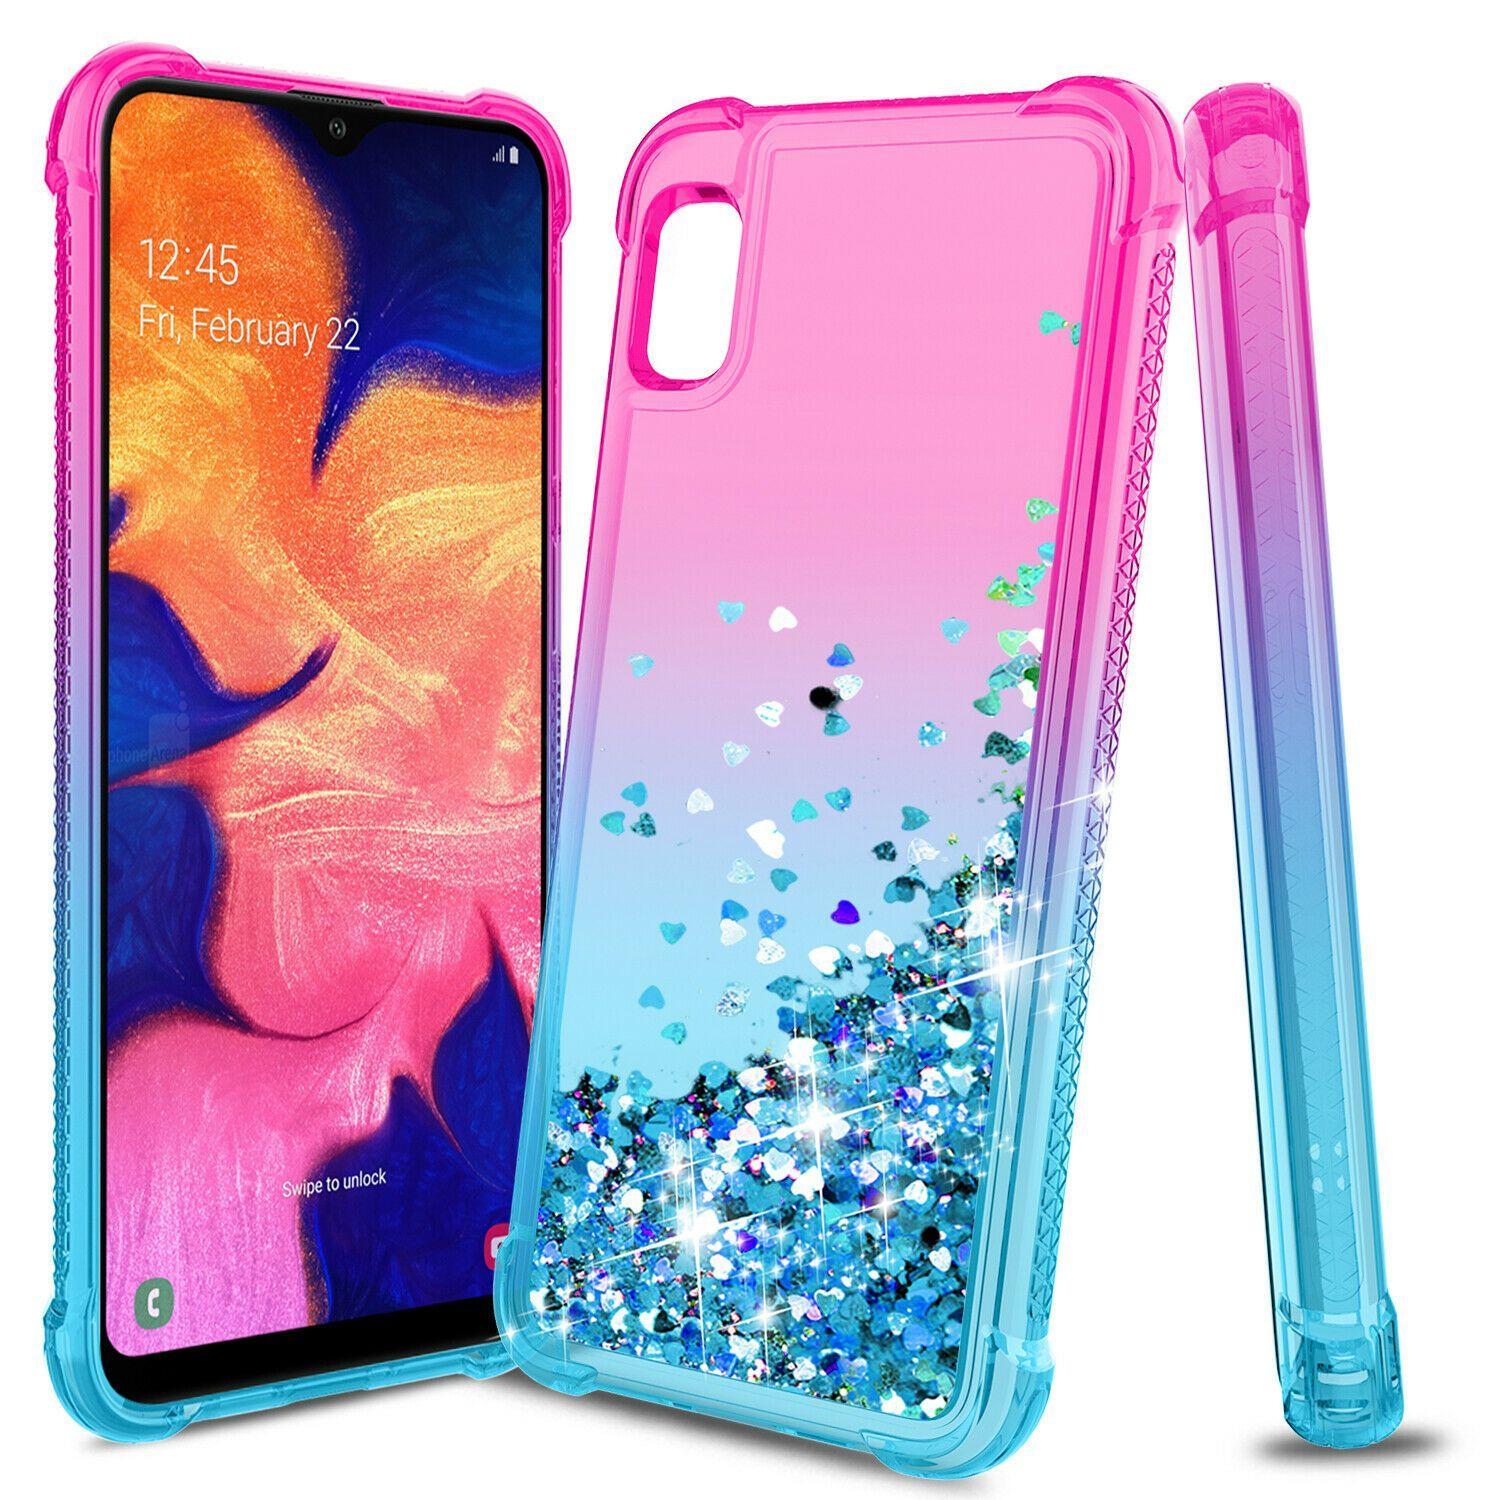 Samsung Wallpaper A10 Hintergrundbild Tapete Samsung Galaxy A10e Phone Case Shockproof Liquid Glitter Pink Phone Cases Homemade Phone Cases Girl Phone Cases